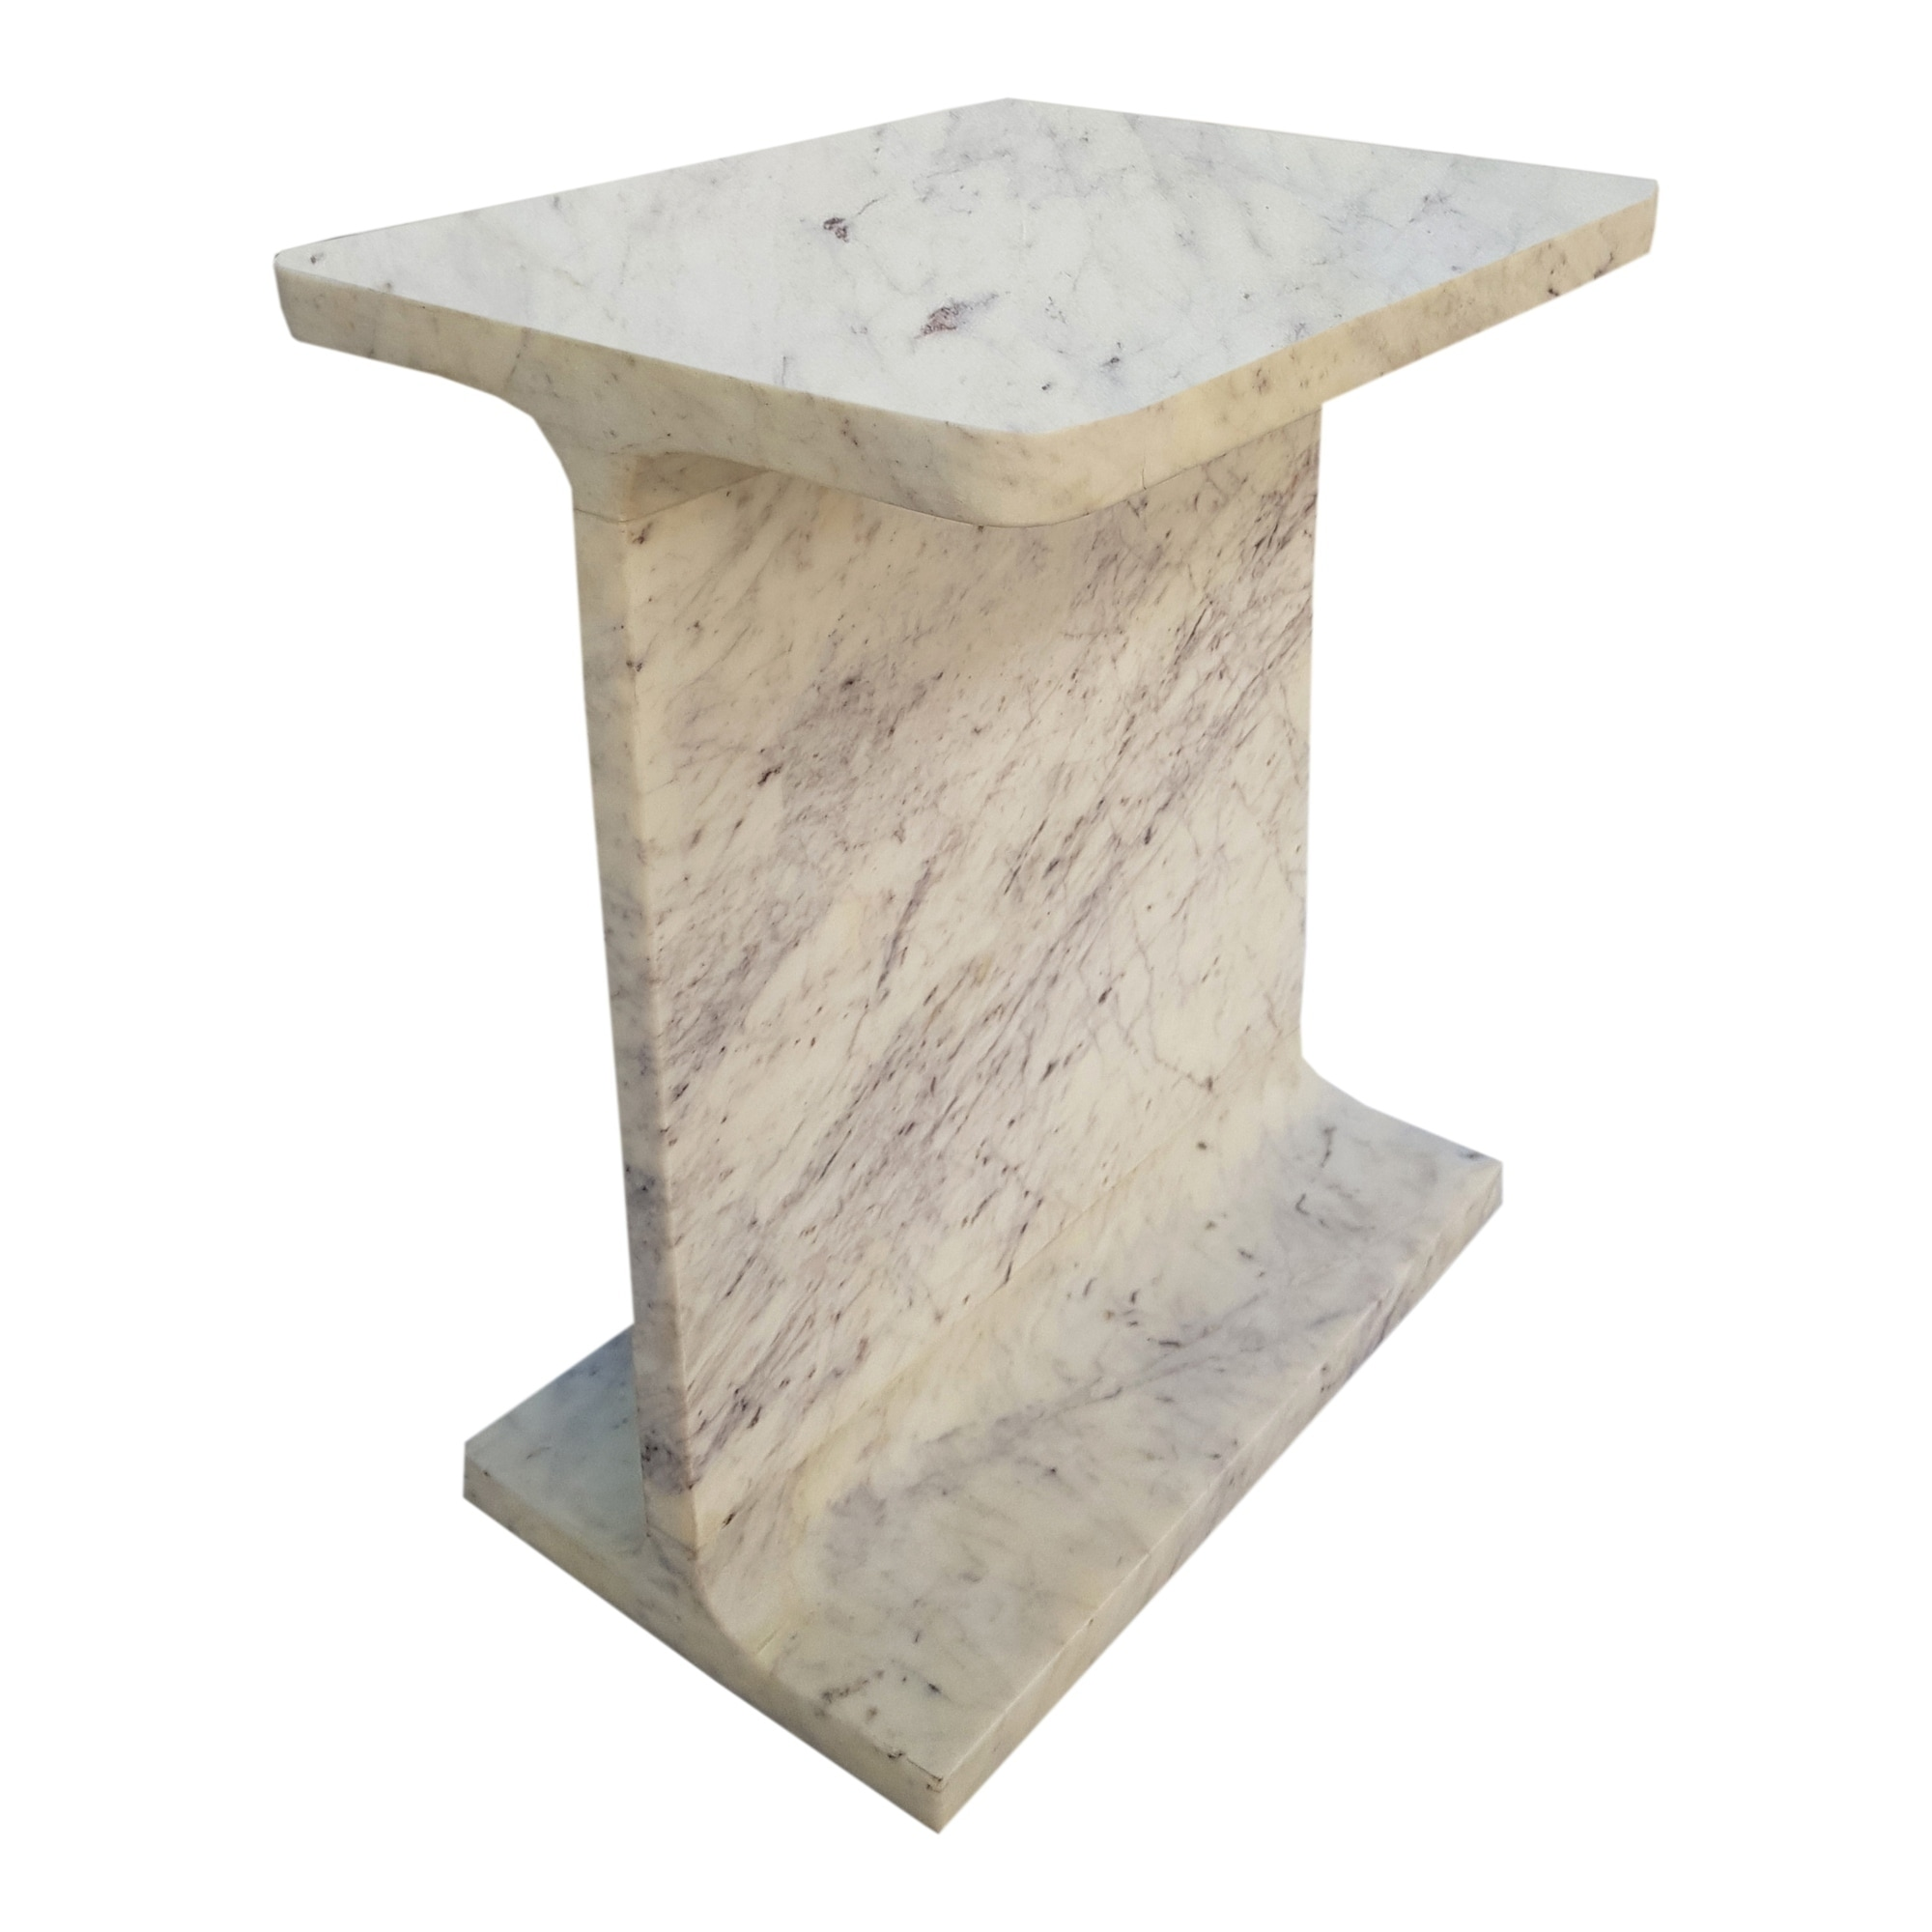 aurelle home modern white marble accent table free pedestal shipping today distressed round side light shades kitchen chair cushions with ties height outdoor patio tables